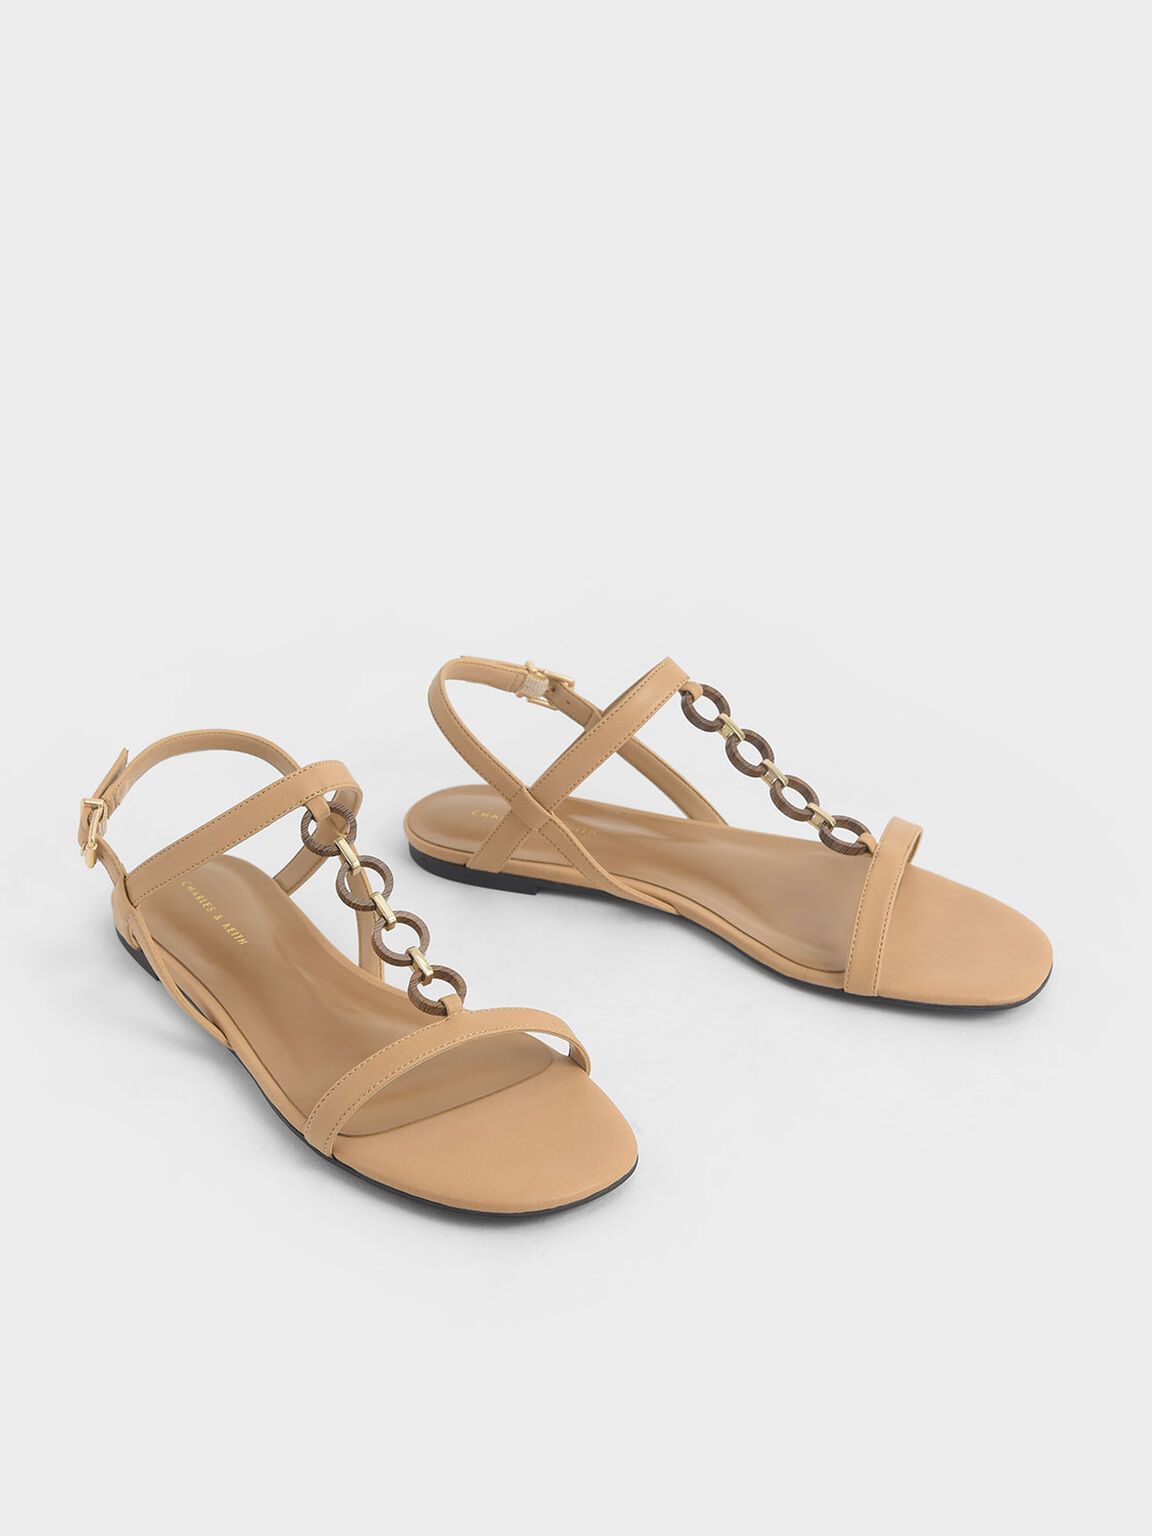 Wood-Effect Chain Link Sandals, Nude, hi-res